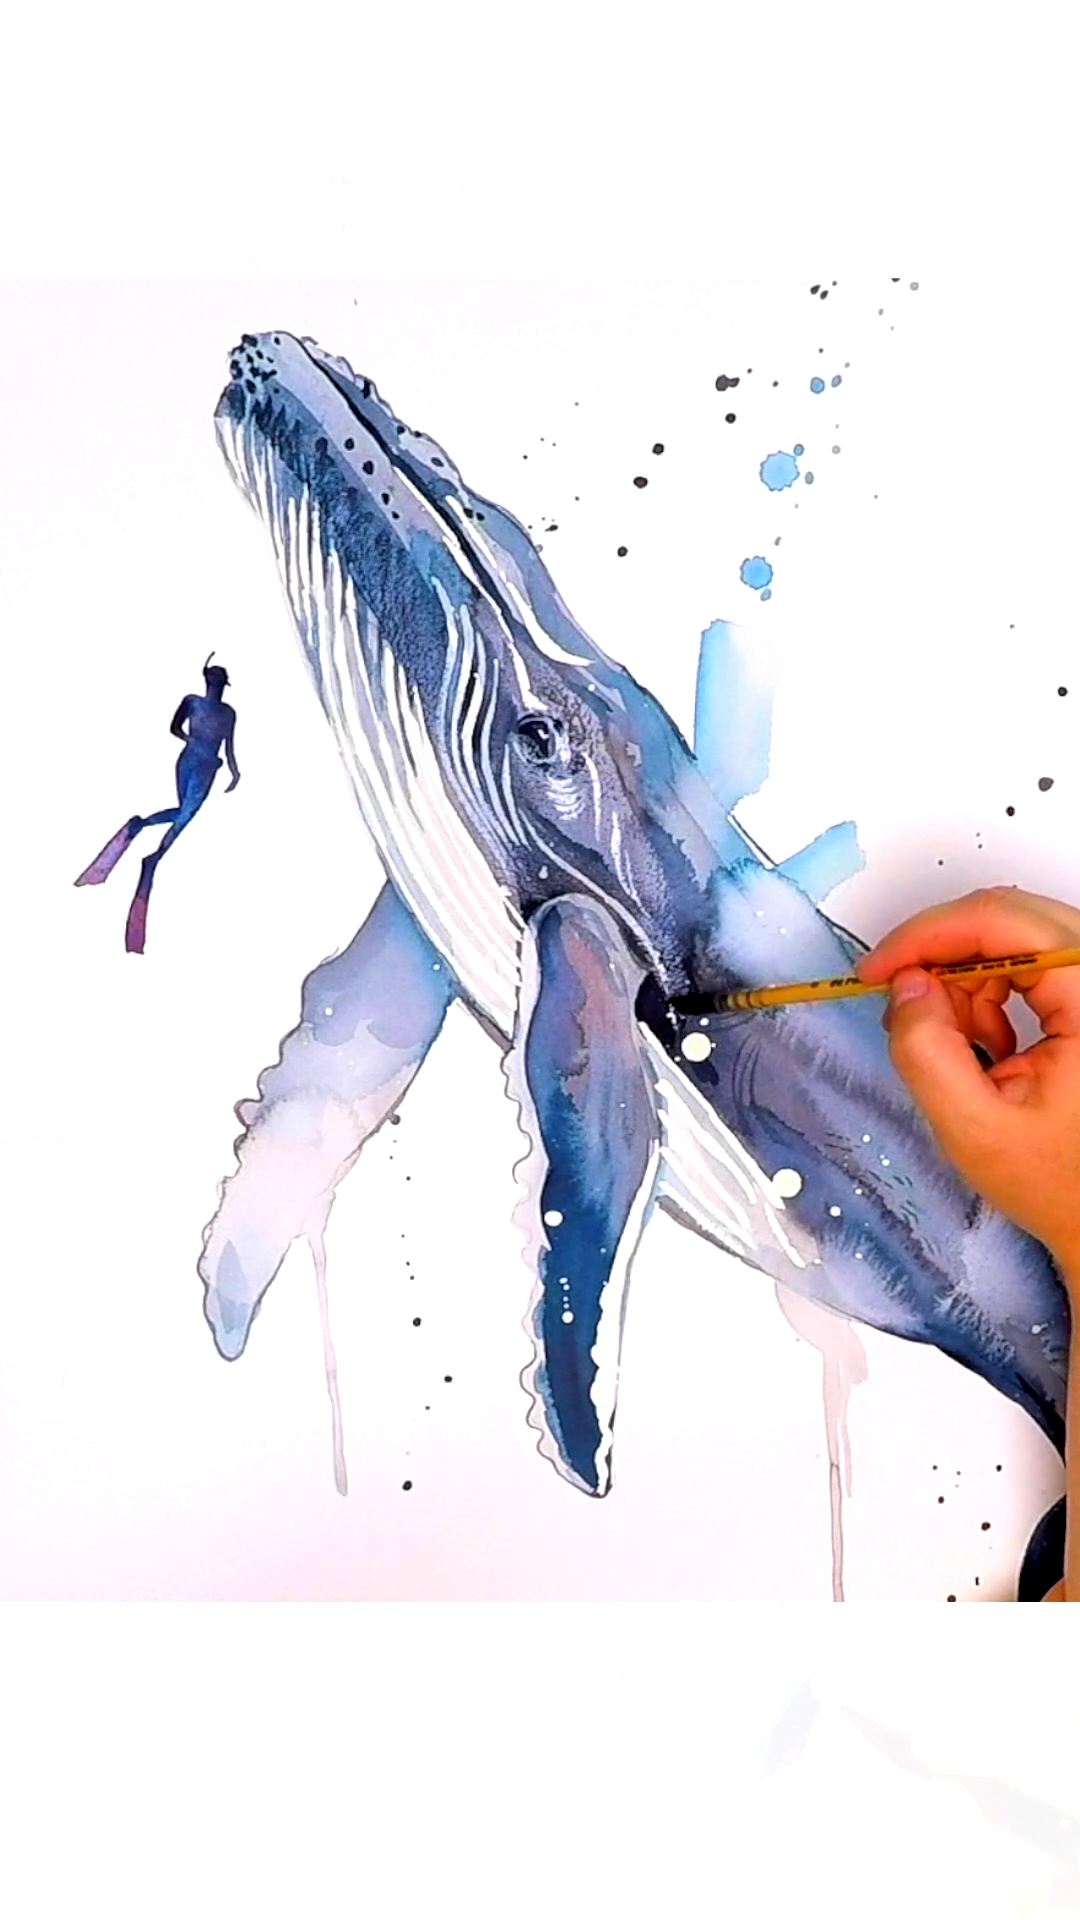 Photo of Scuba Diving with Humpback Whale watercolor painting by Slaveika Aladjova